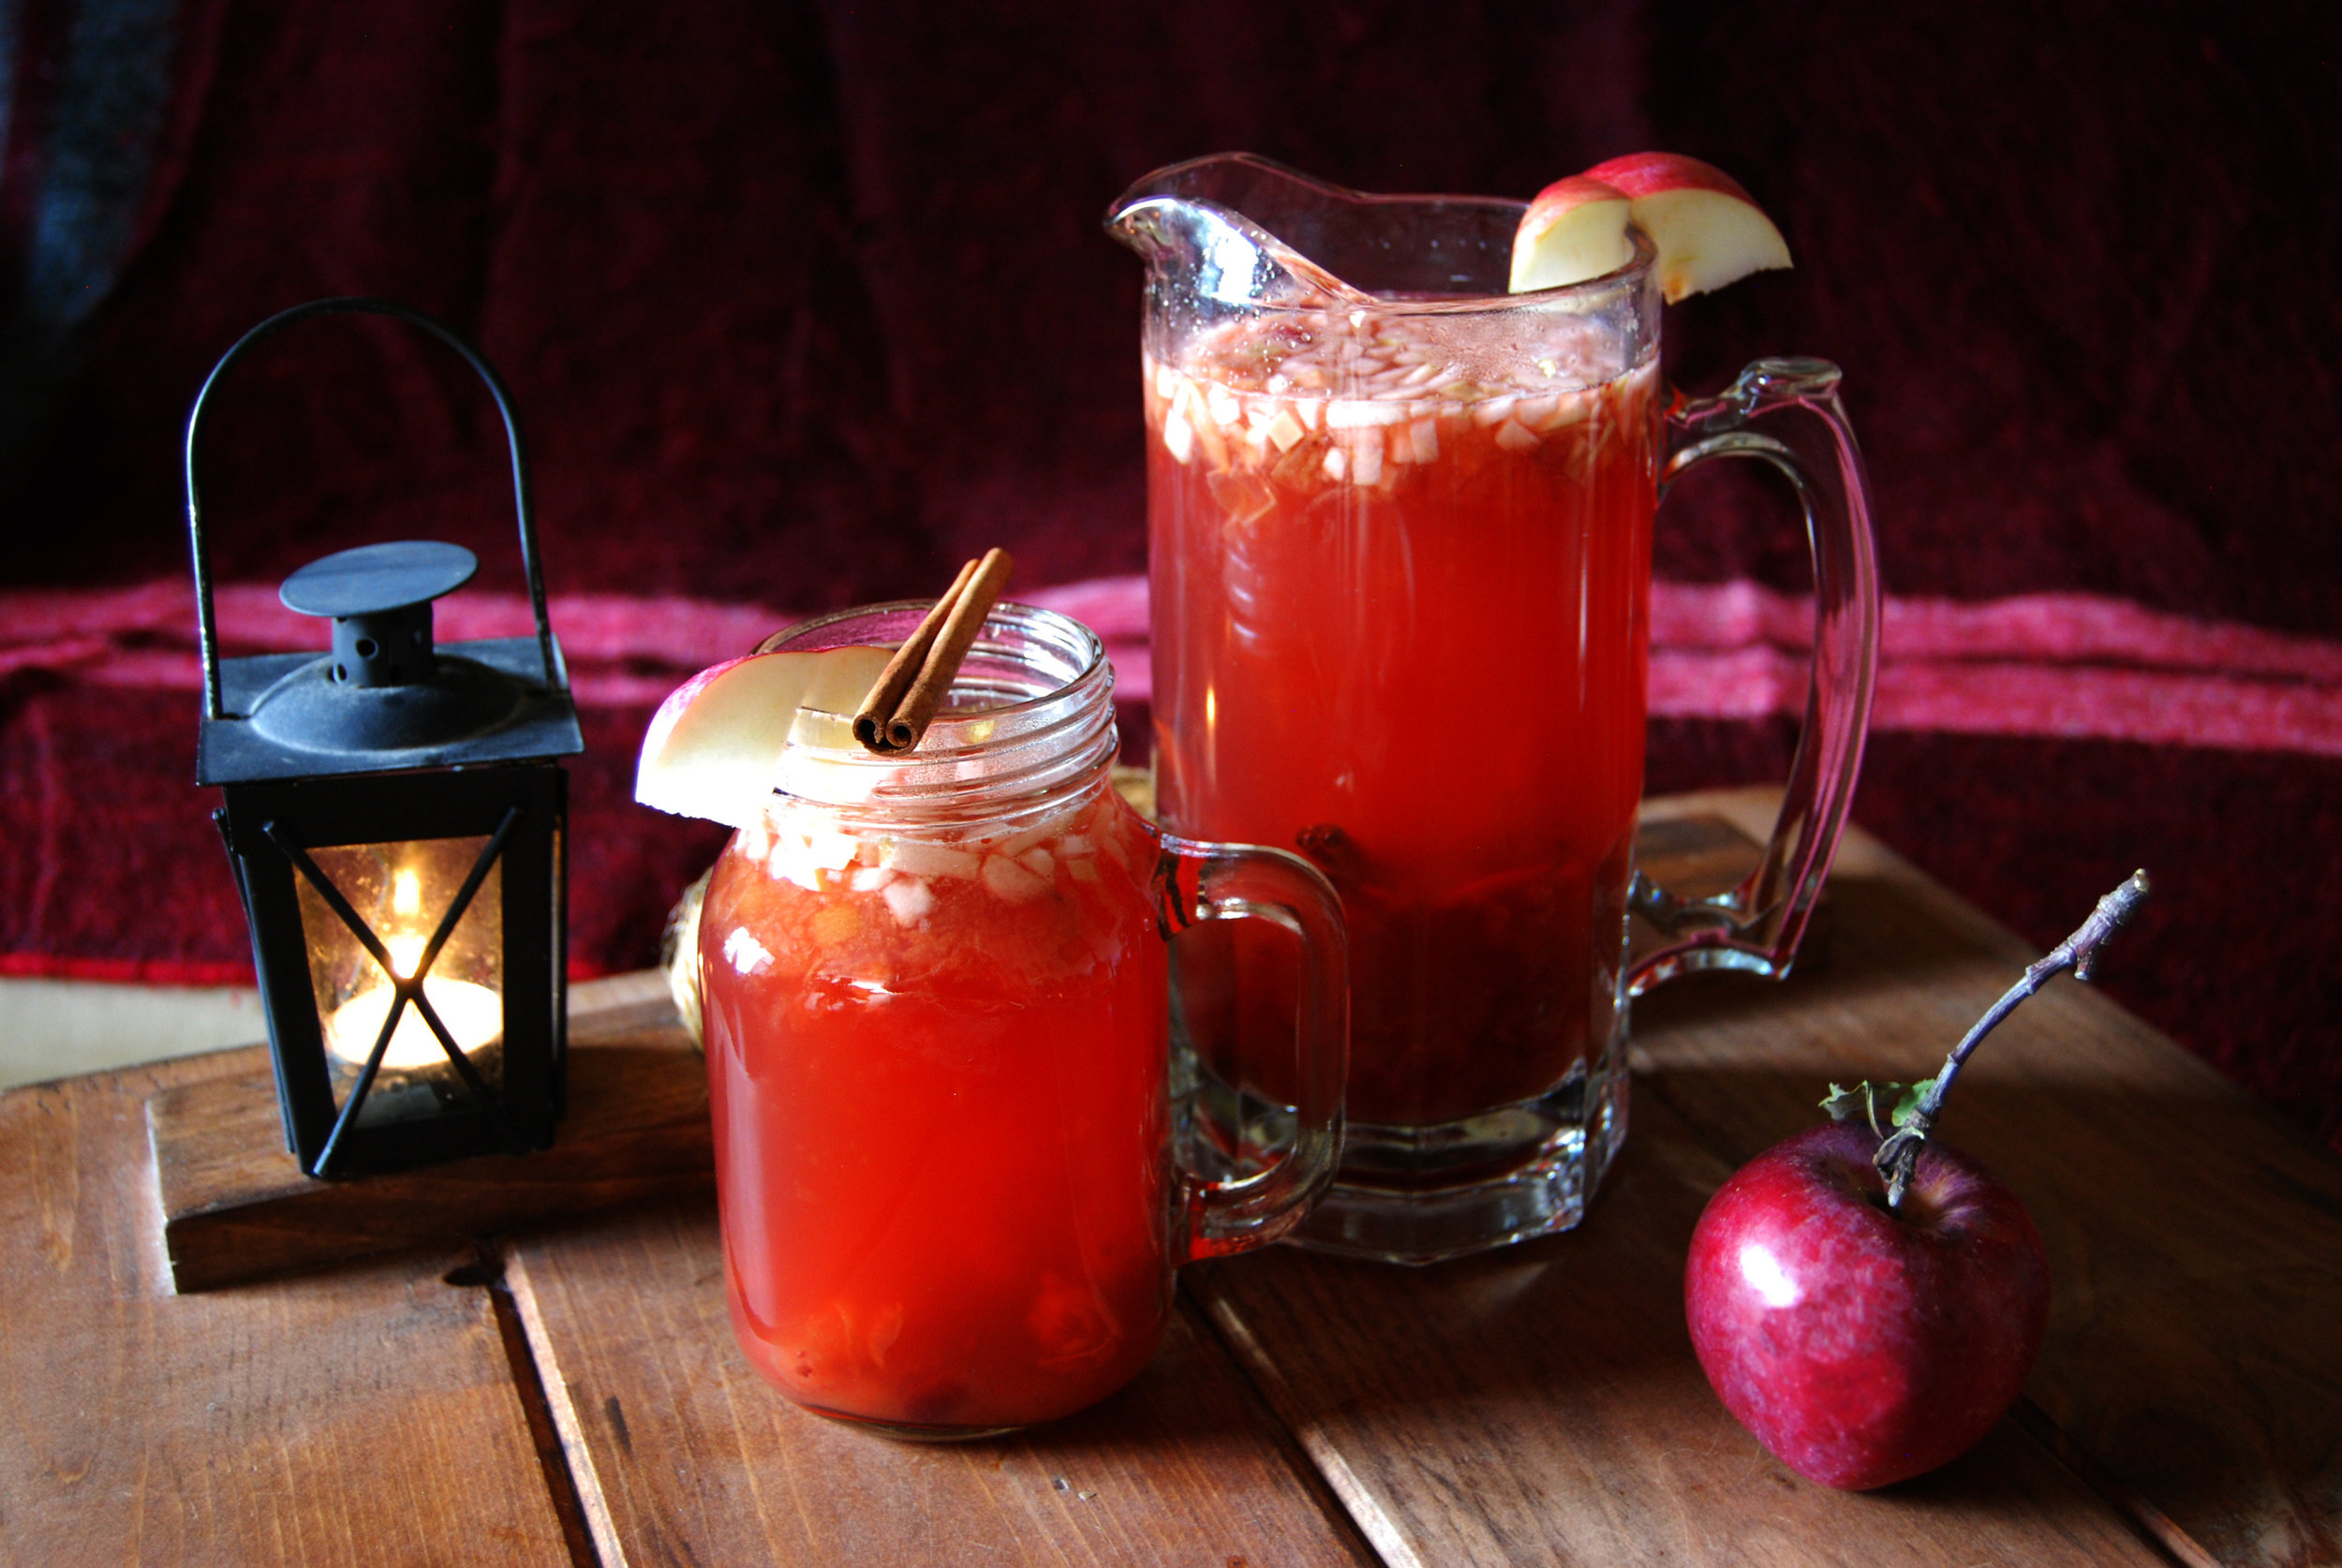 The Hot Harvest Punch.